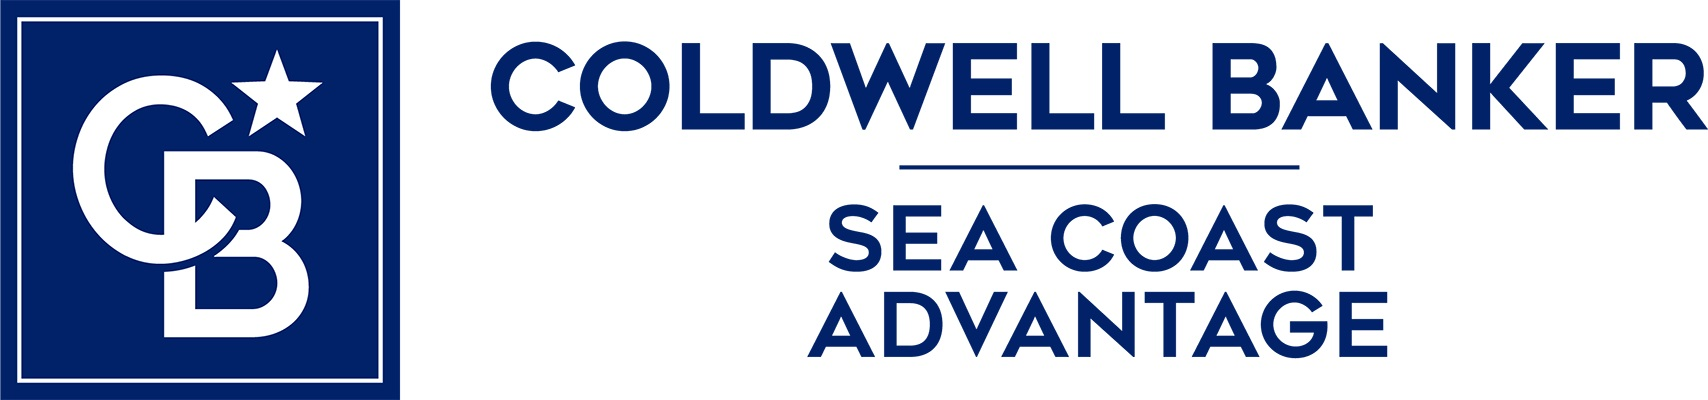 Justin May - Coldwell Banker Sea Coast Advantage Realty